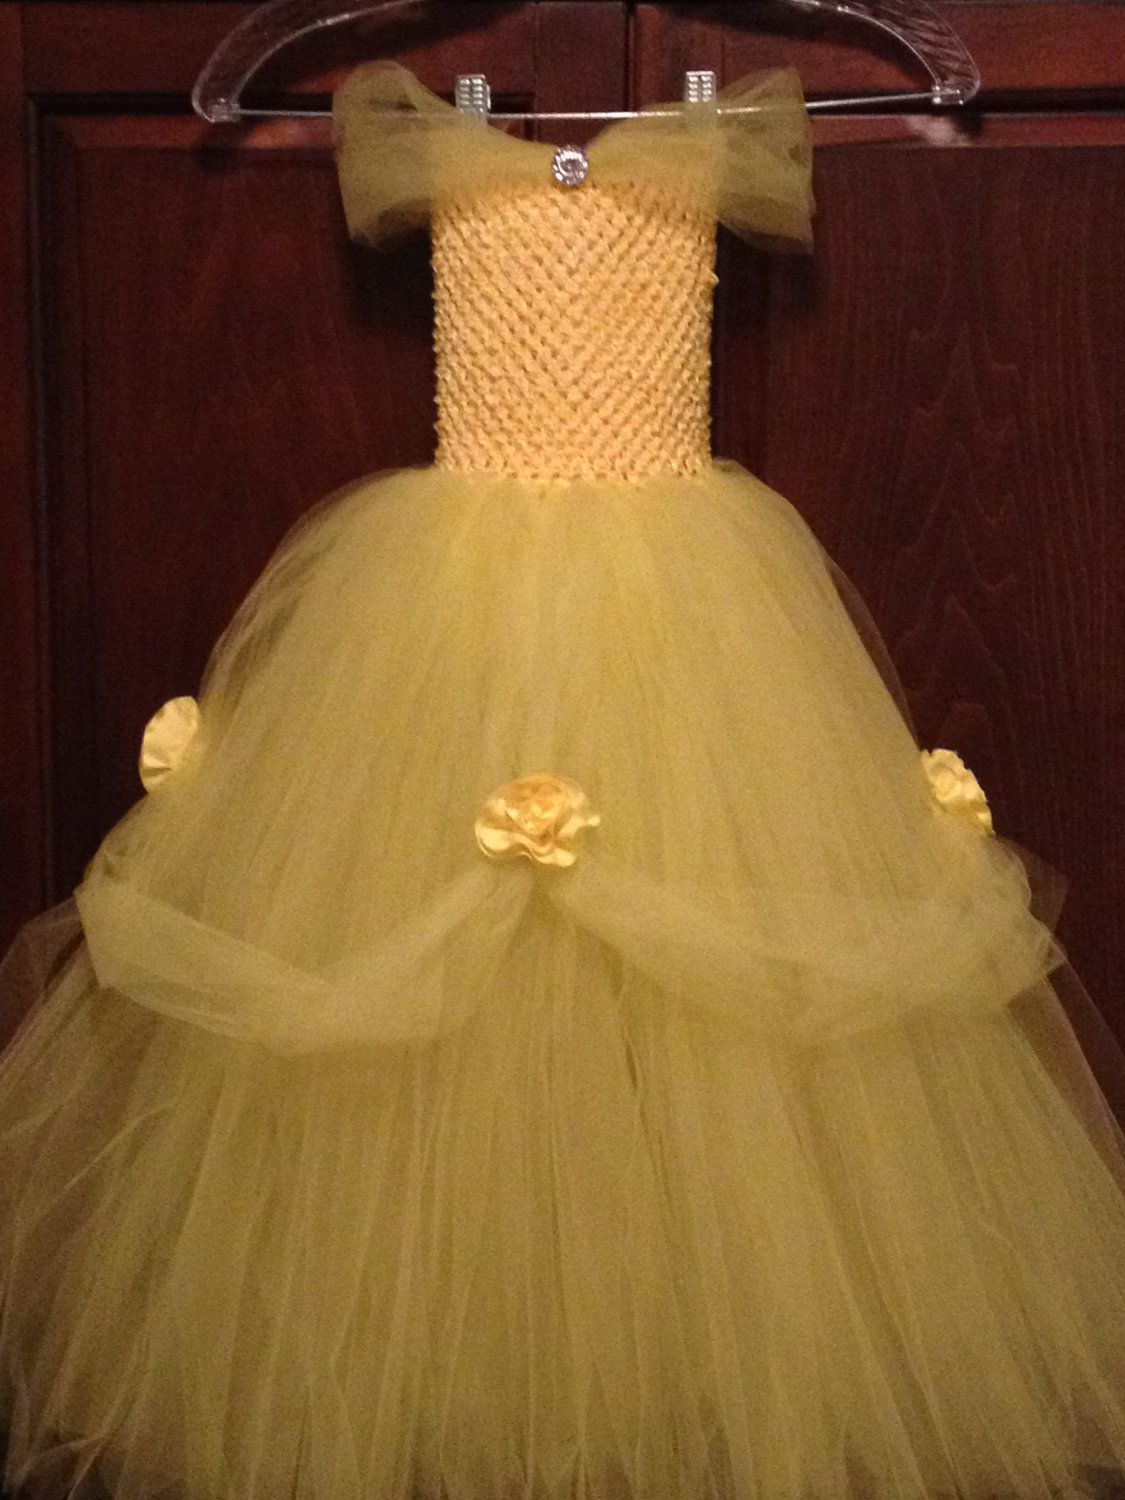 Belle inspired tutu dress size NB3 by MakeItMineBR on Etsy $45.00 & Belle inspired tutu dress size NB3 by MakeItMineBR on Etsy $45.00 ...